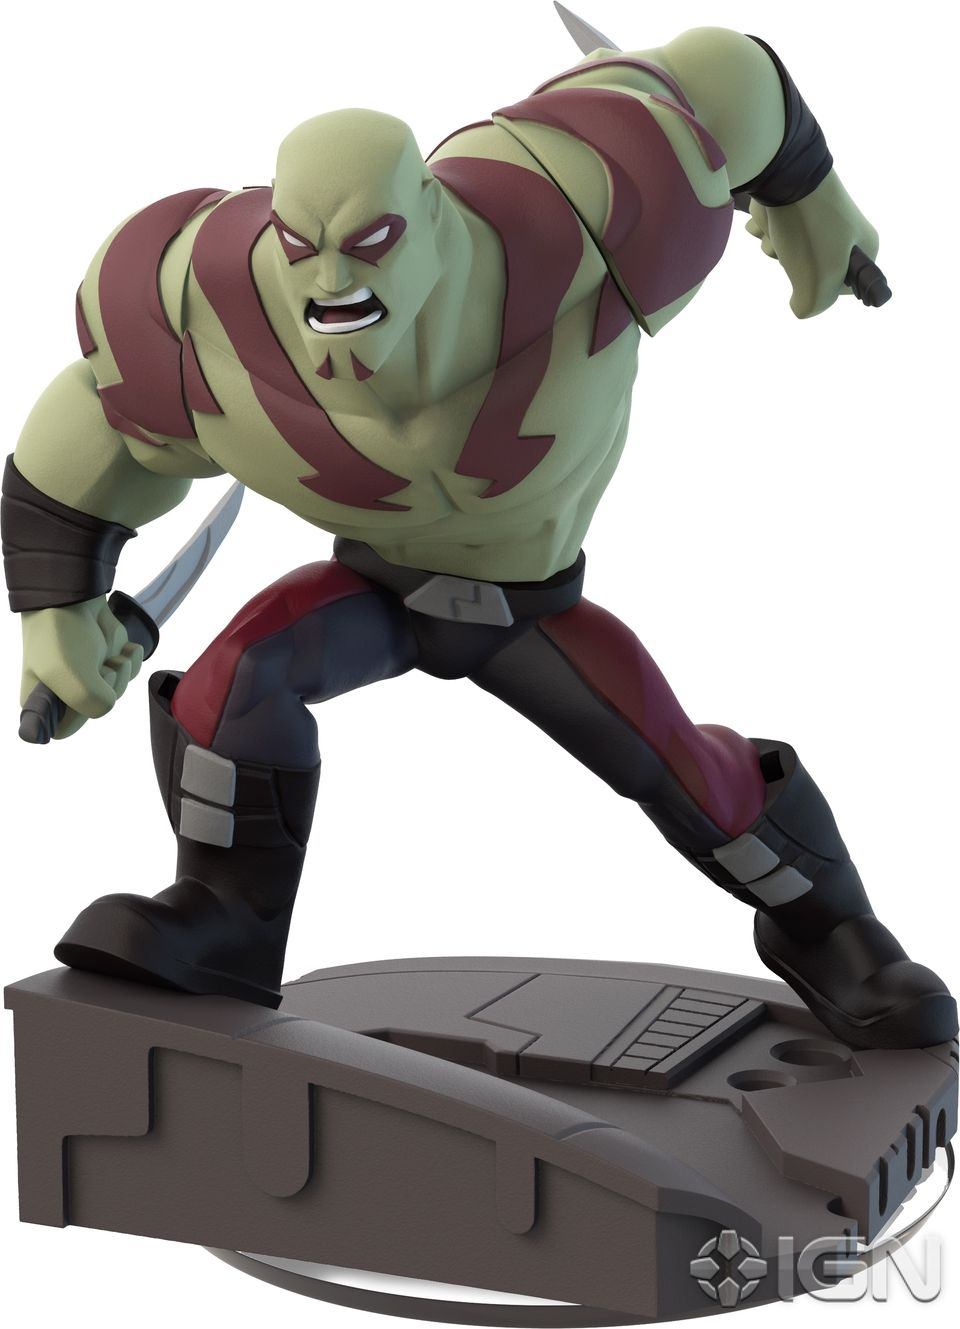 Disney Infinity 2.0 Figure: Drax (Wave 1, Guardians of the Galaxy Play Set, Sold Separately)